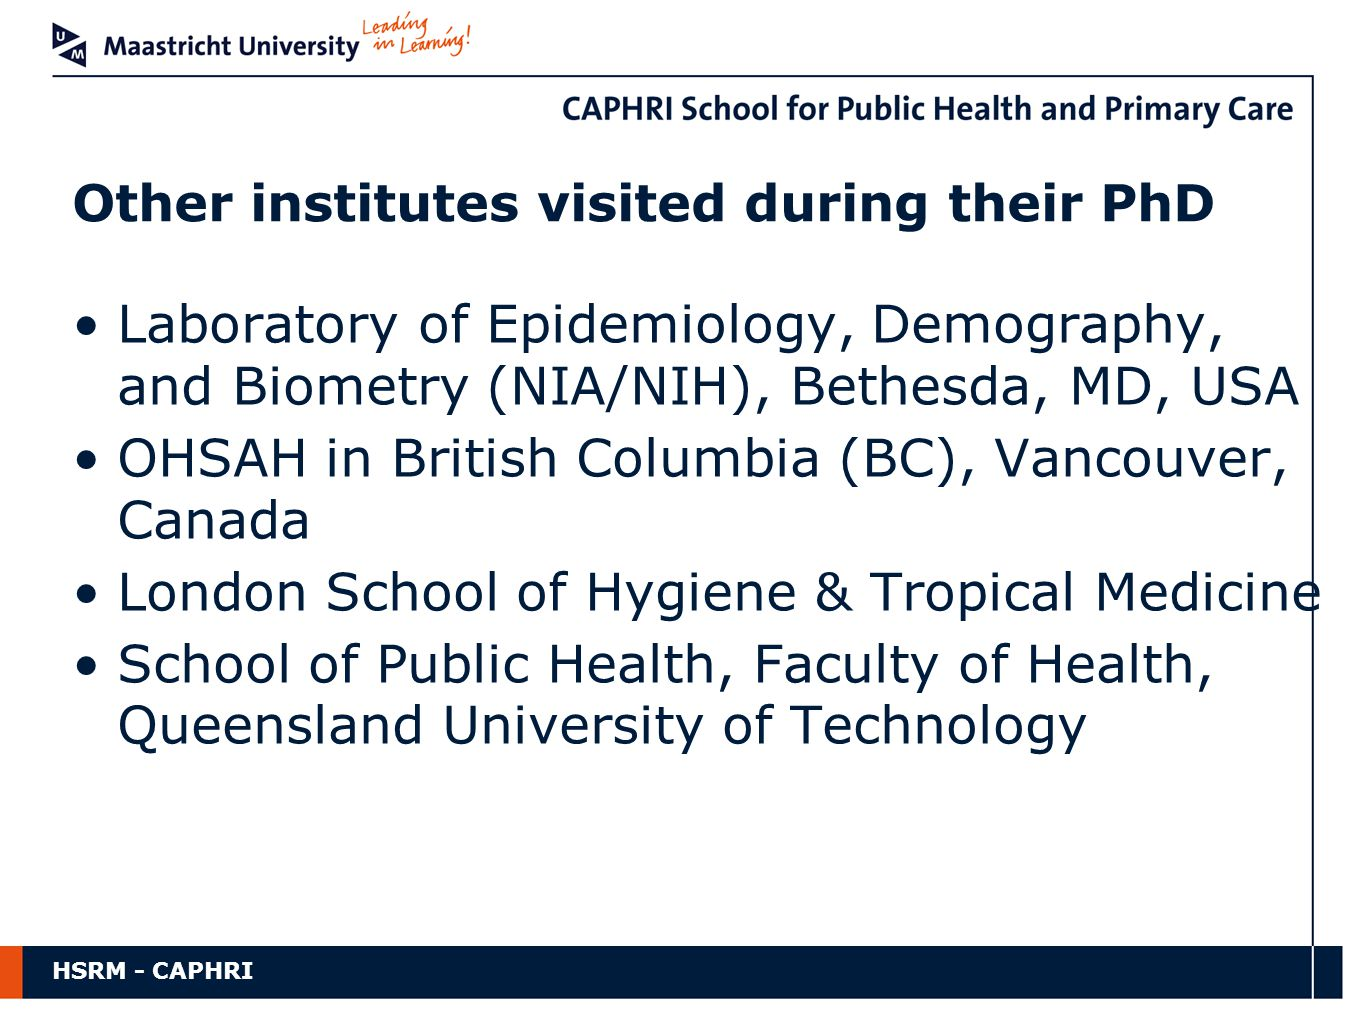 HSRM - CAPHRI Laboratory of Epidemiology, Demography, and Biometry (NIA/NIH), Bethesda, MD, USA OHSAH in British Columbia (BC), Vancouver, Canada London School of Hygiene & Tropical Medicine School of Public Health, Faculty of Health, Queensland University of Technology Other institutes visited during their PhD